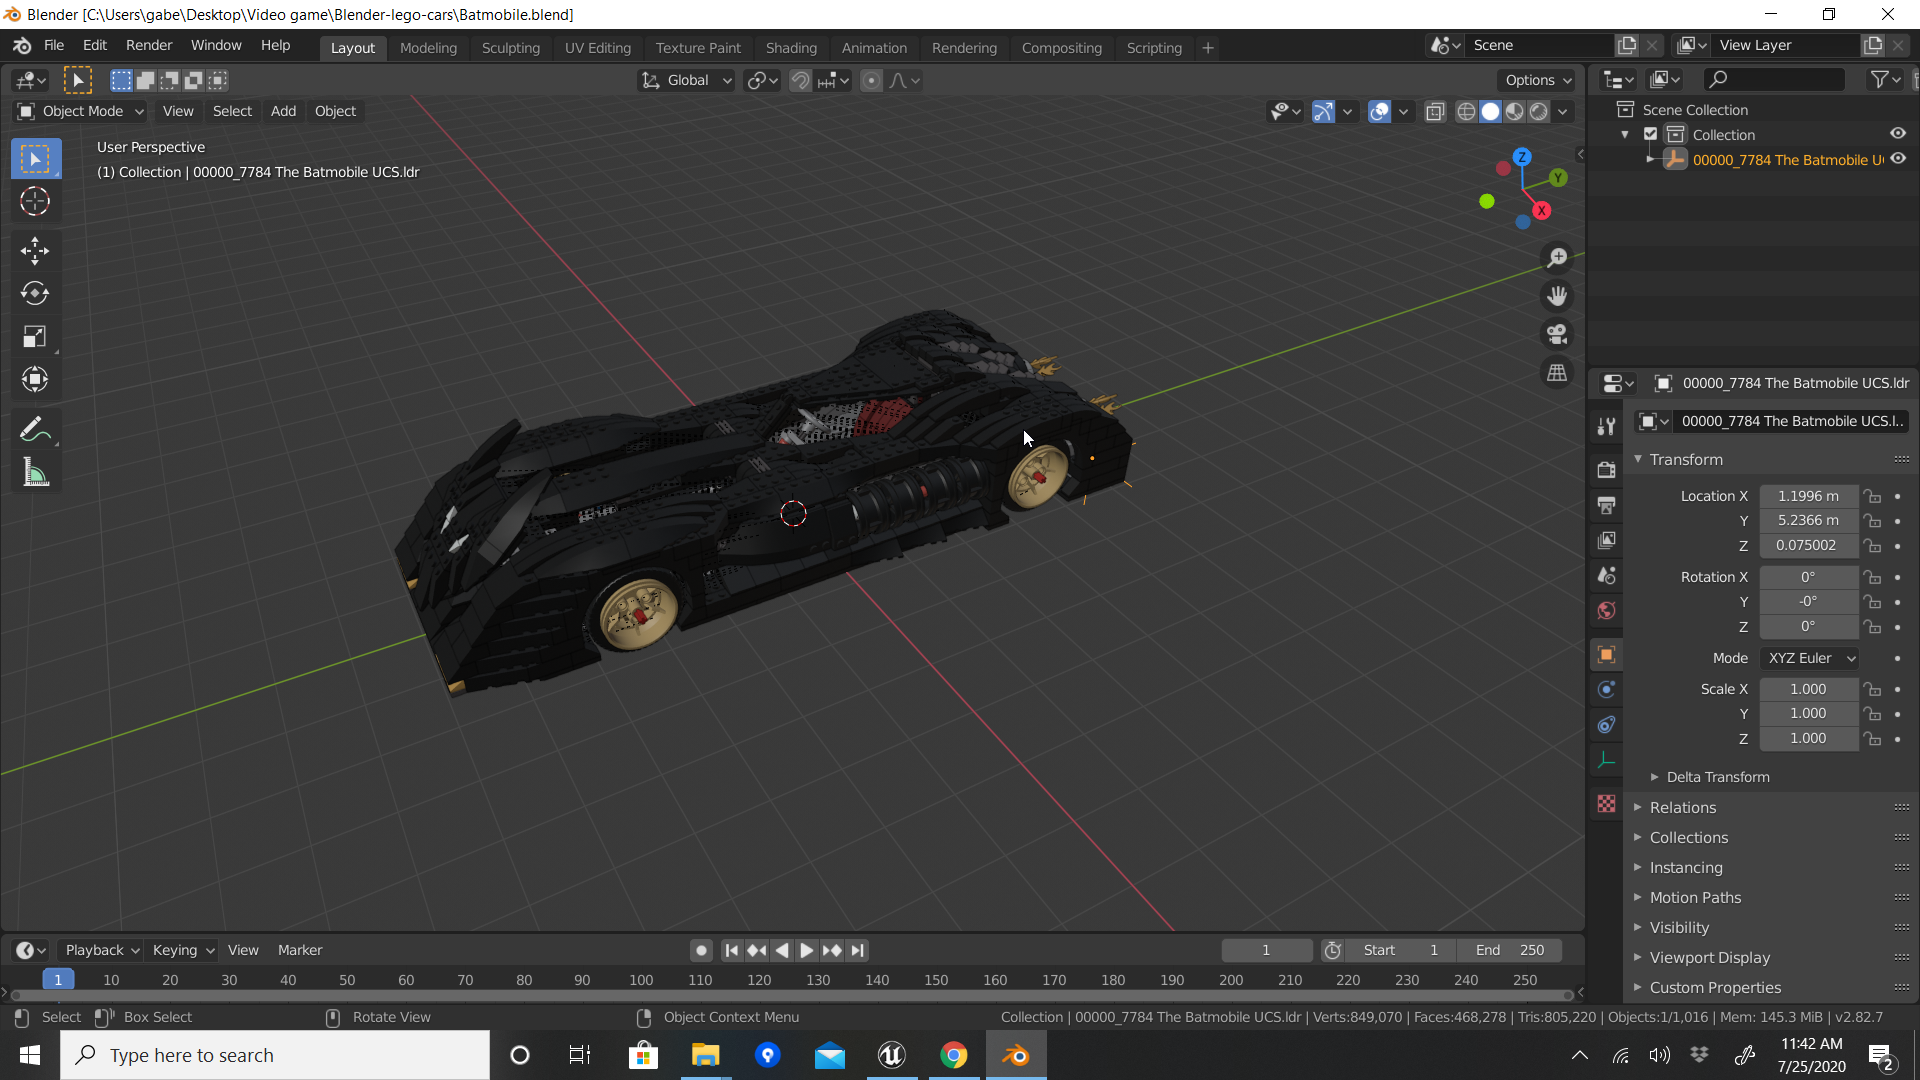 Lego Batmobile preview image 1